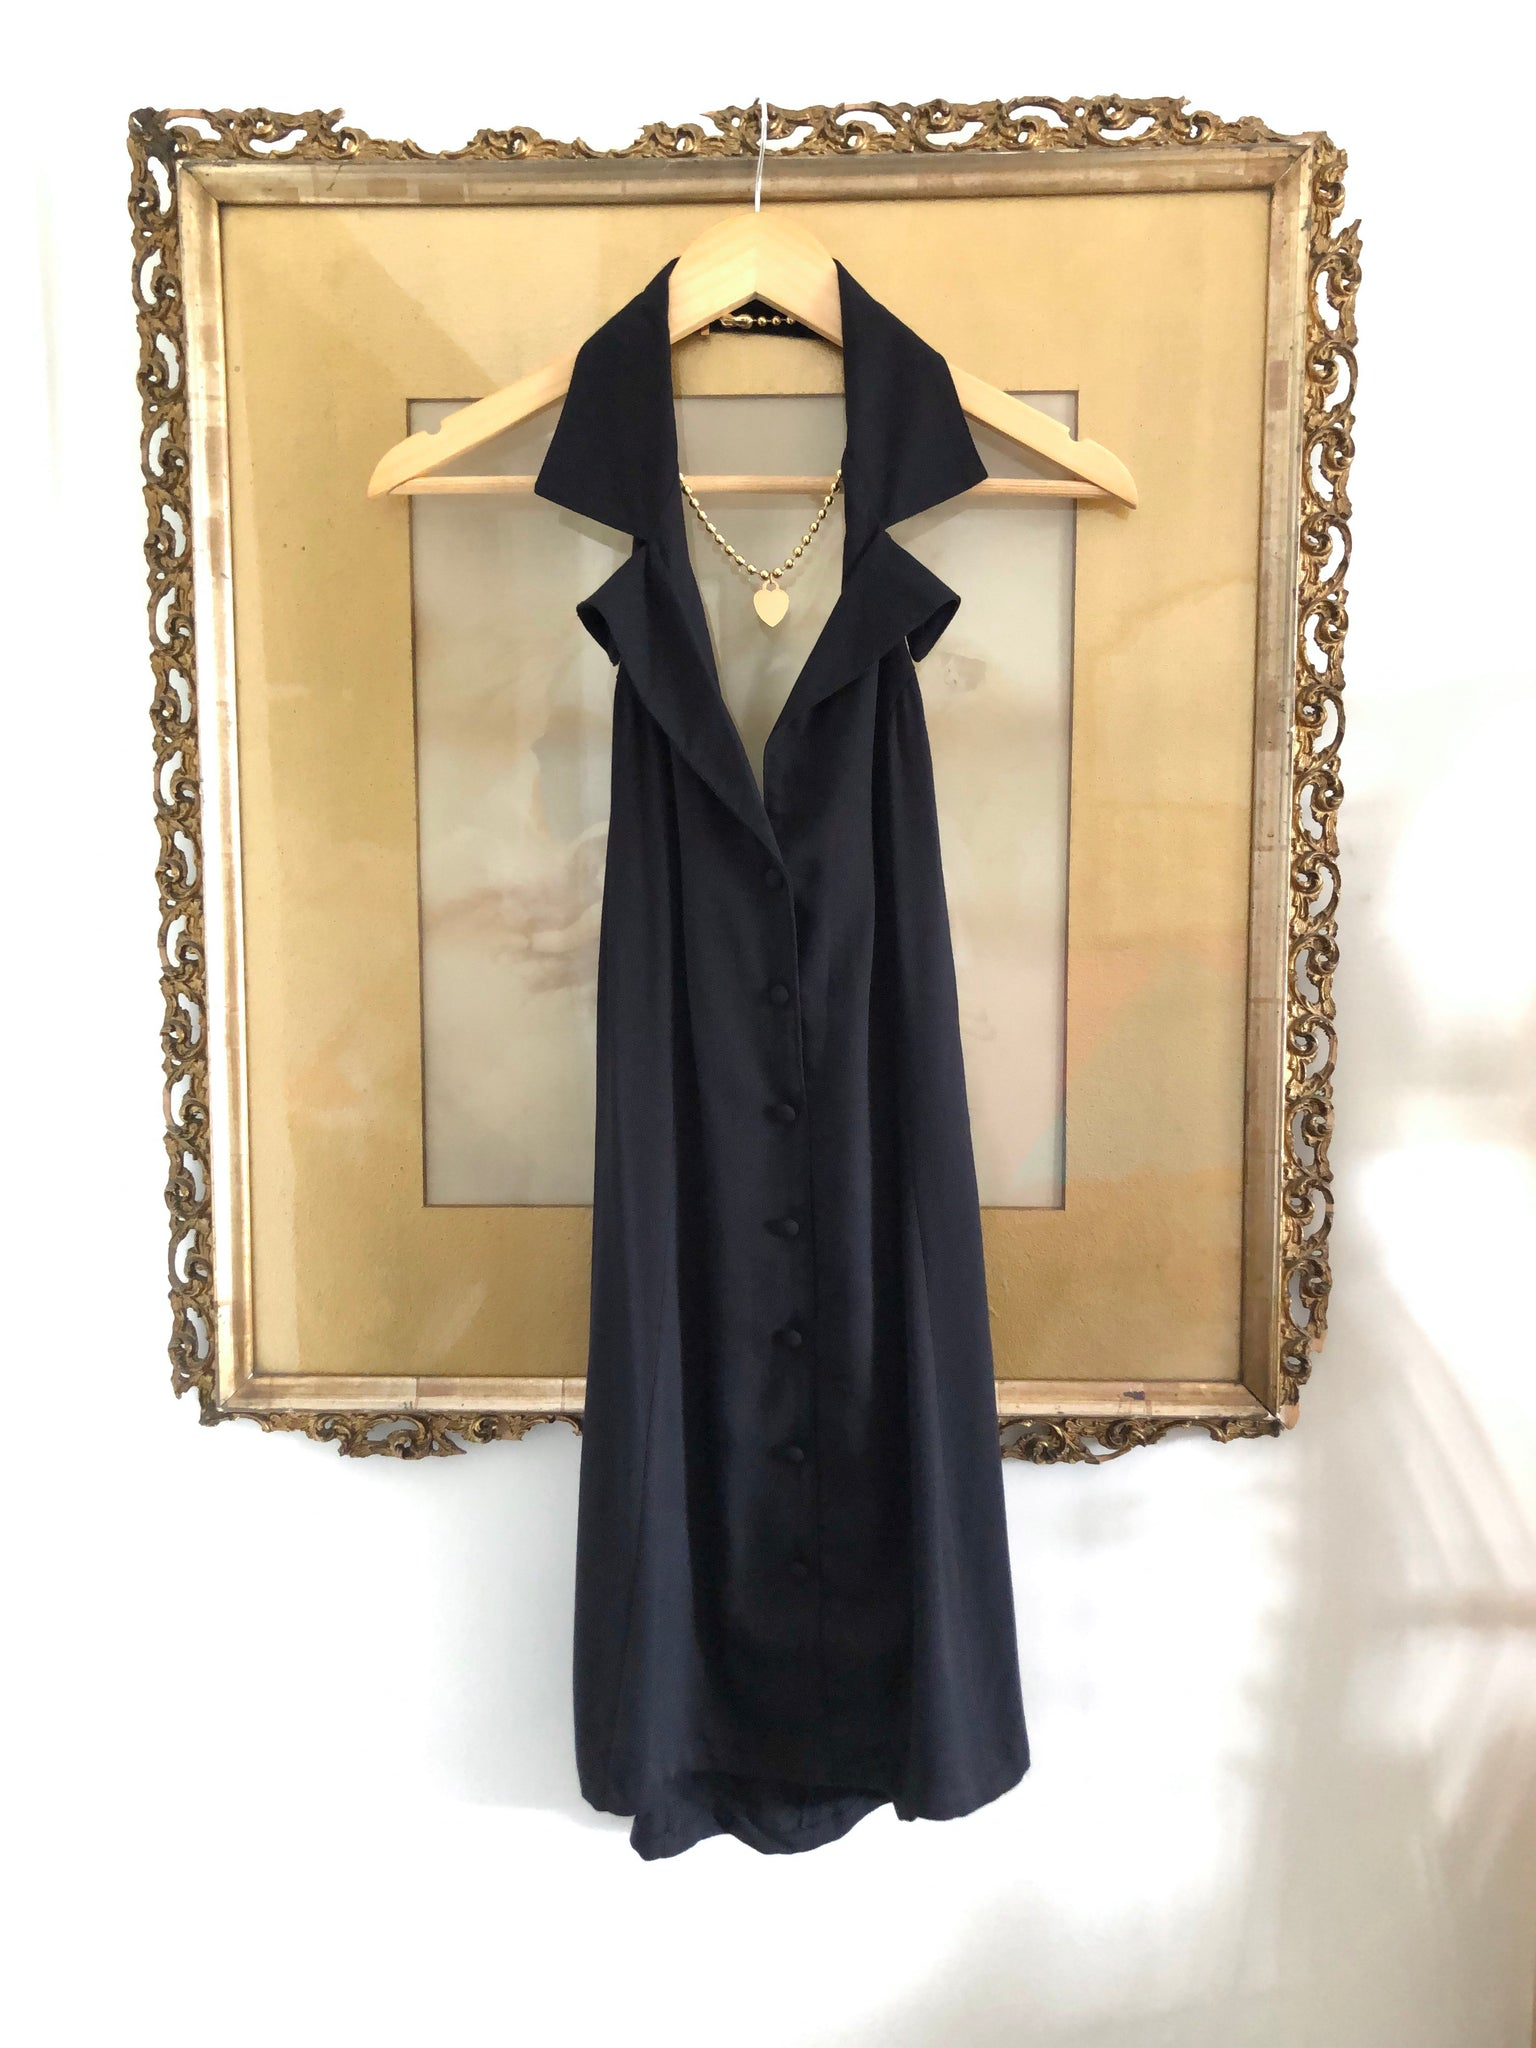 Samples The Valentina Dress: Black | SAMPLE Vanessa Mooney